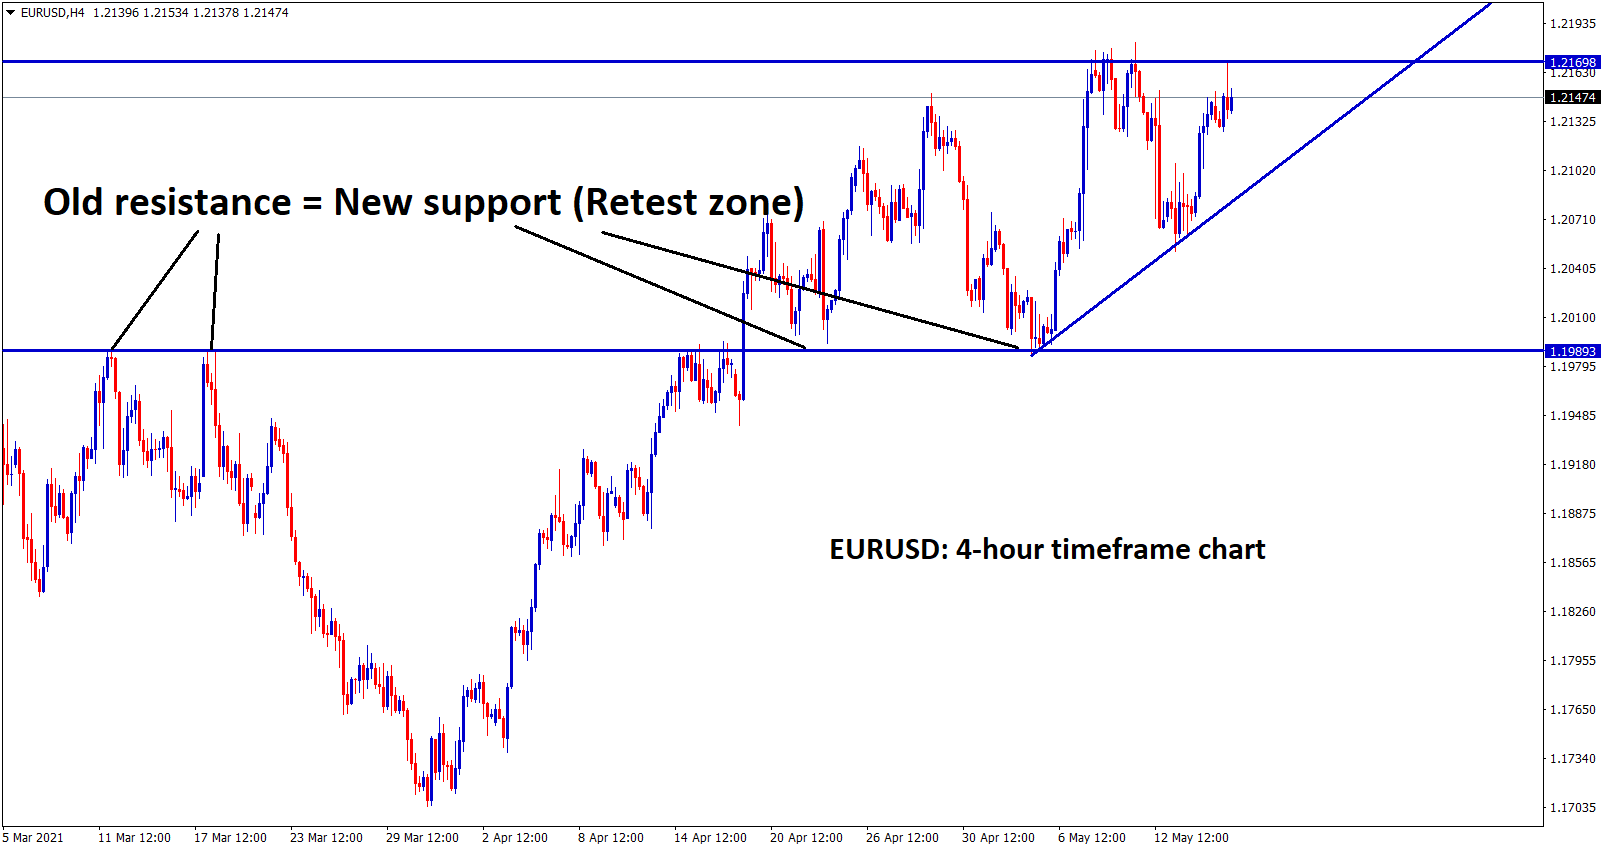 EURUSD forming an Ascending Triangle after bouncing back from the retest zone.